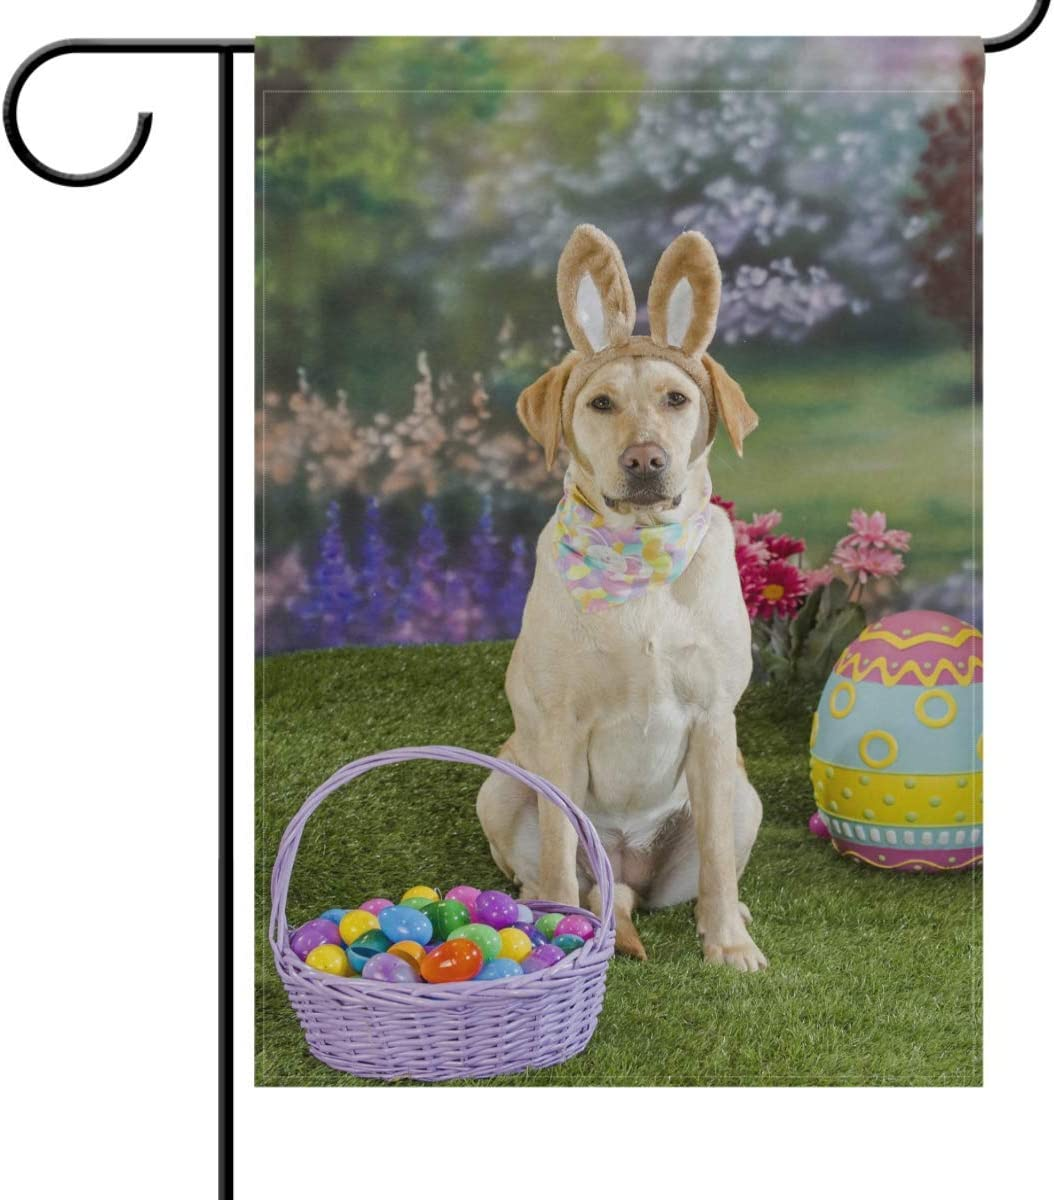 N\ A Garden Flag 28x40 Double Sided Spring Yellow Labrador Dog Bunny Easter Basket Eggs Decorative House Yard Flags for Outside Outdoor Welcome Home Decor Banner Large Size 28 x 40 inches